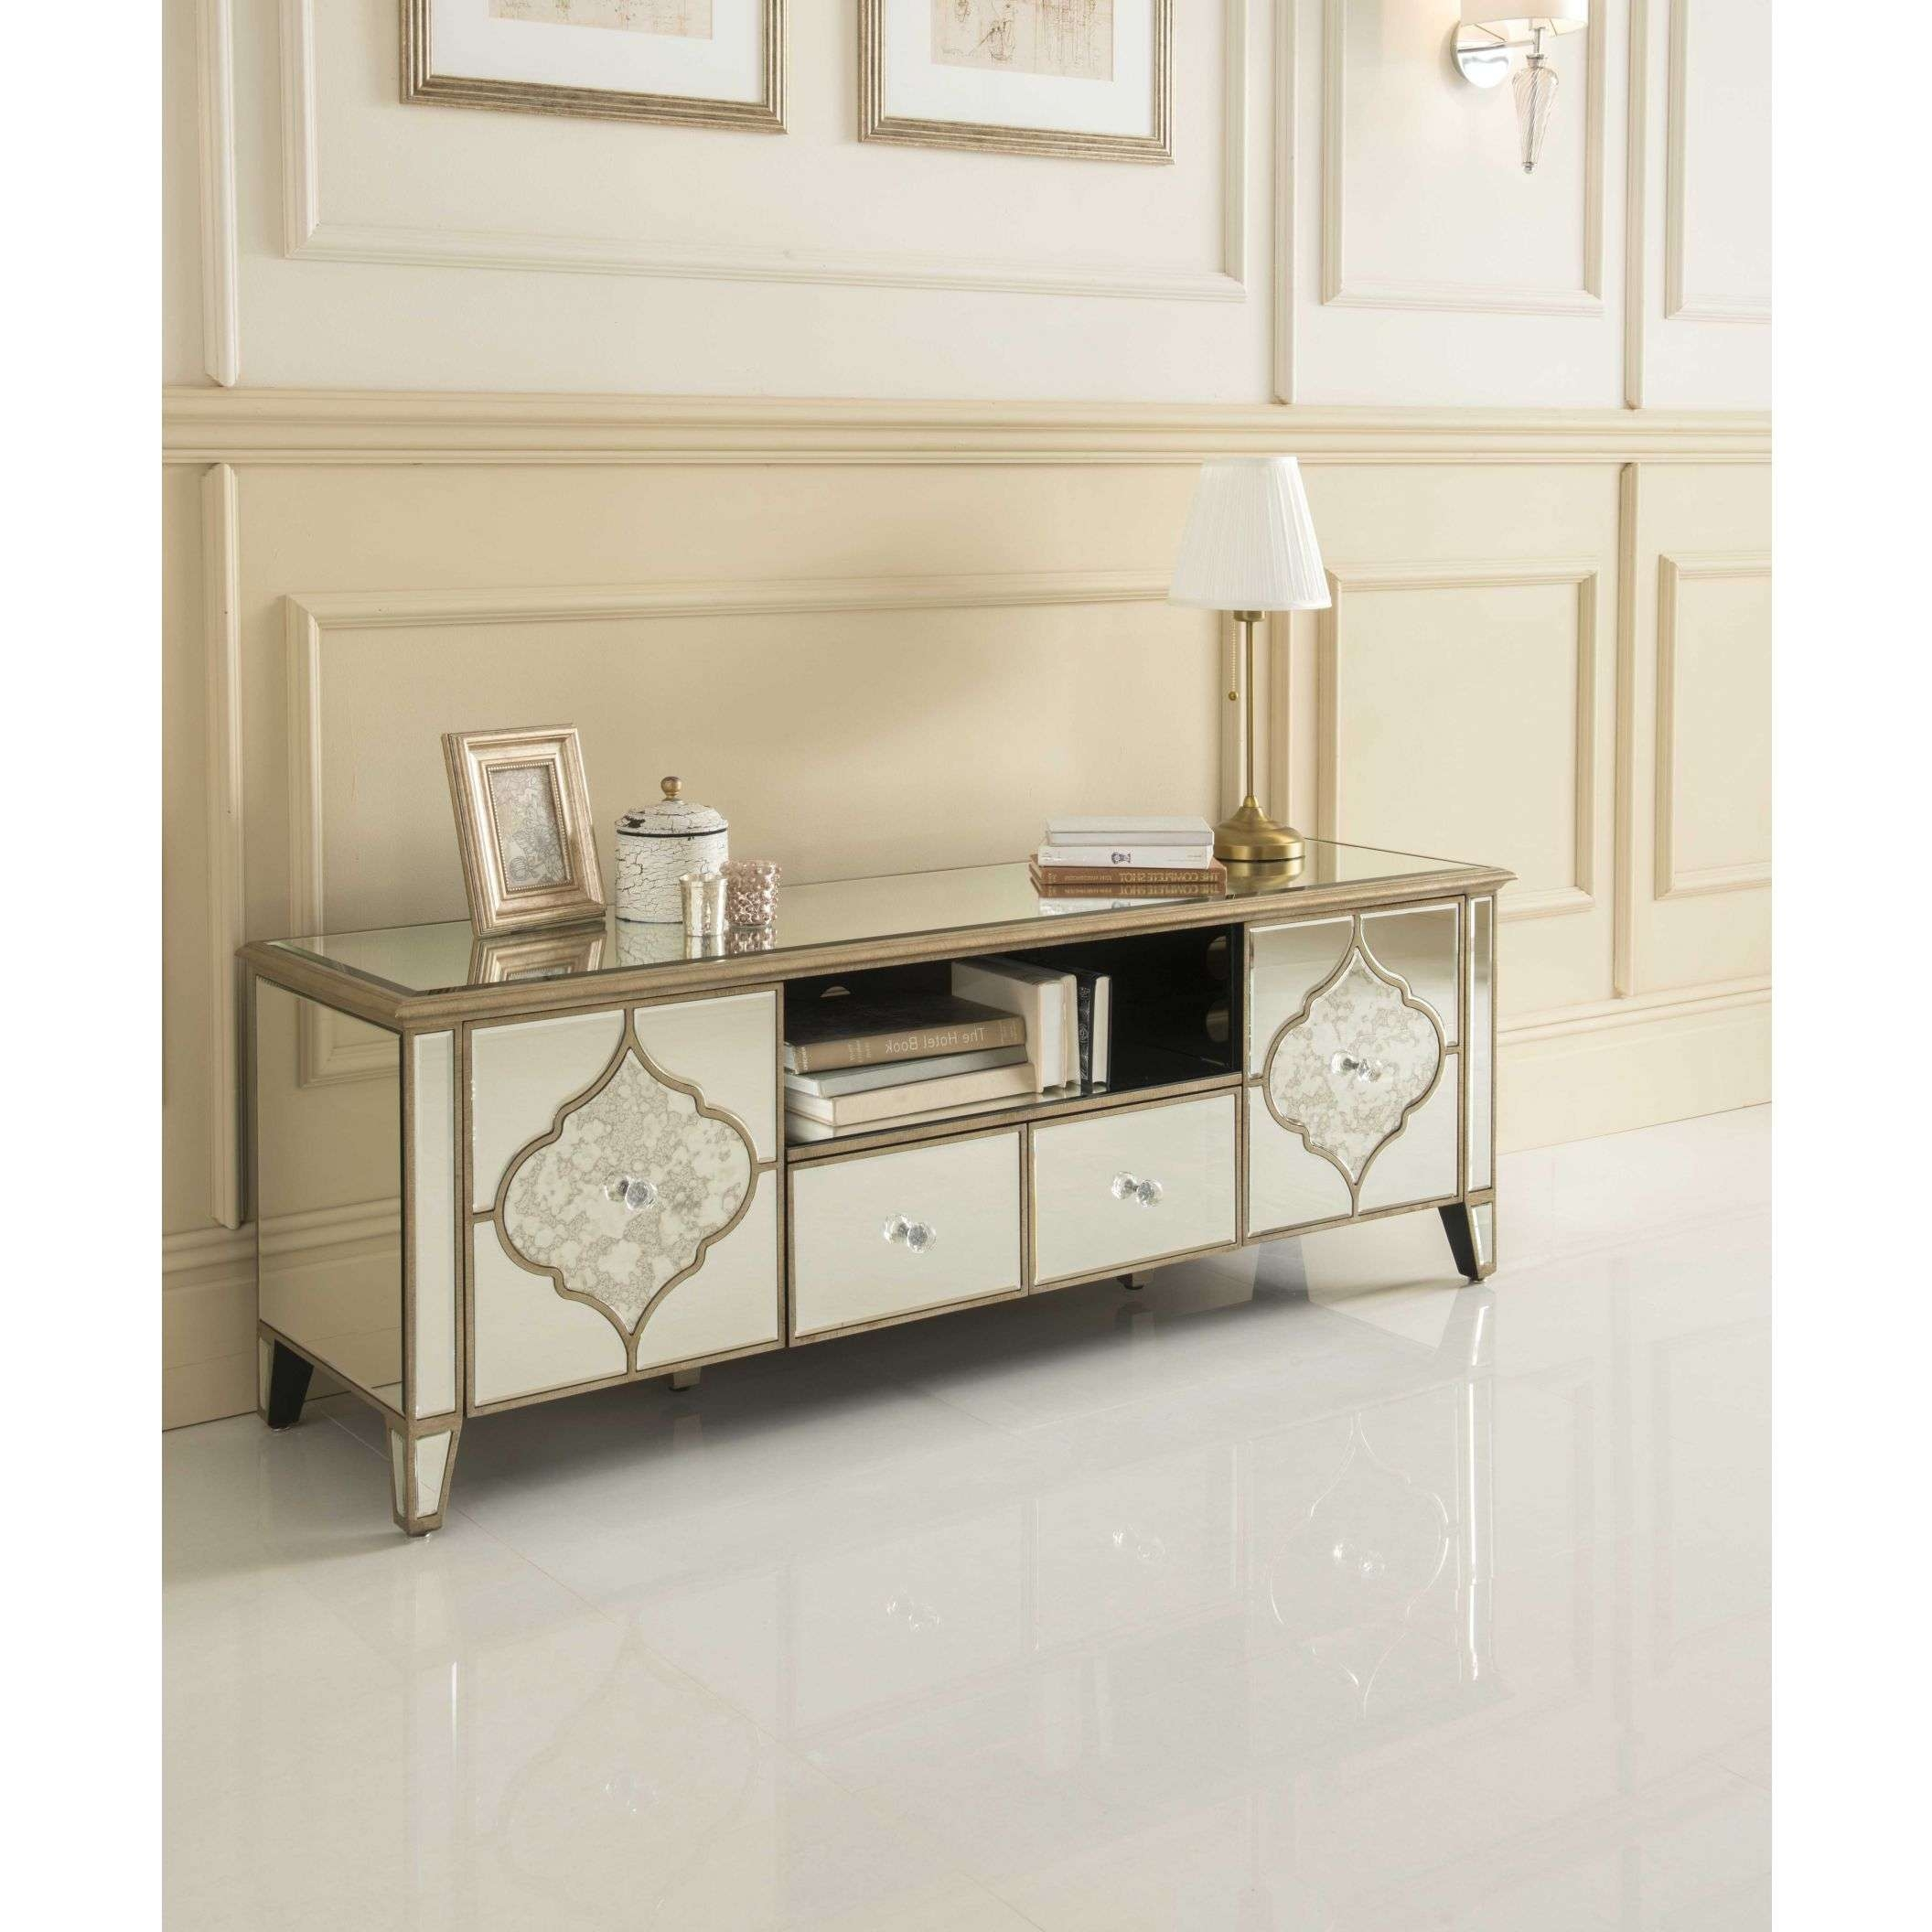 Sassari Mirrored Tv Cabinet | Glass Furniture Intended For Mirrored Tv Cabinets Furniture (View 7 of 20)